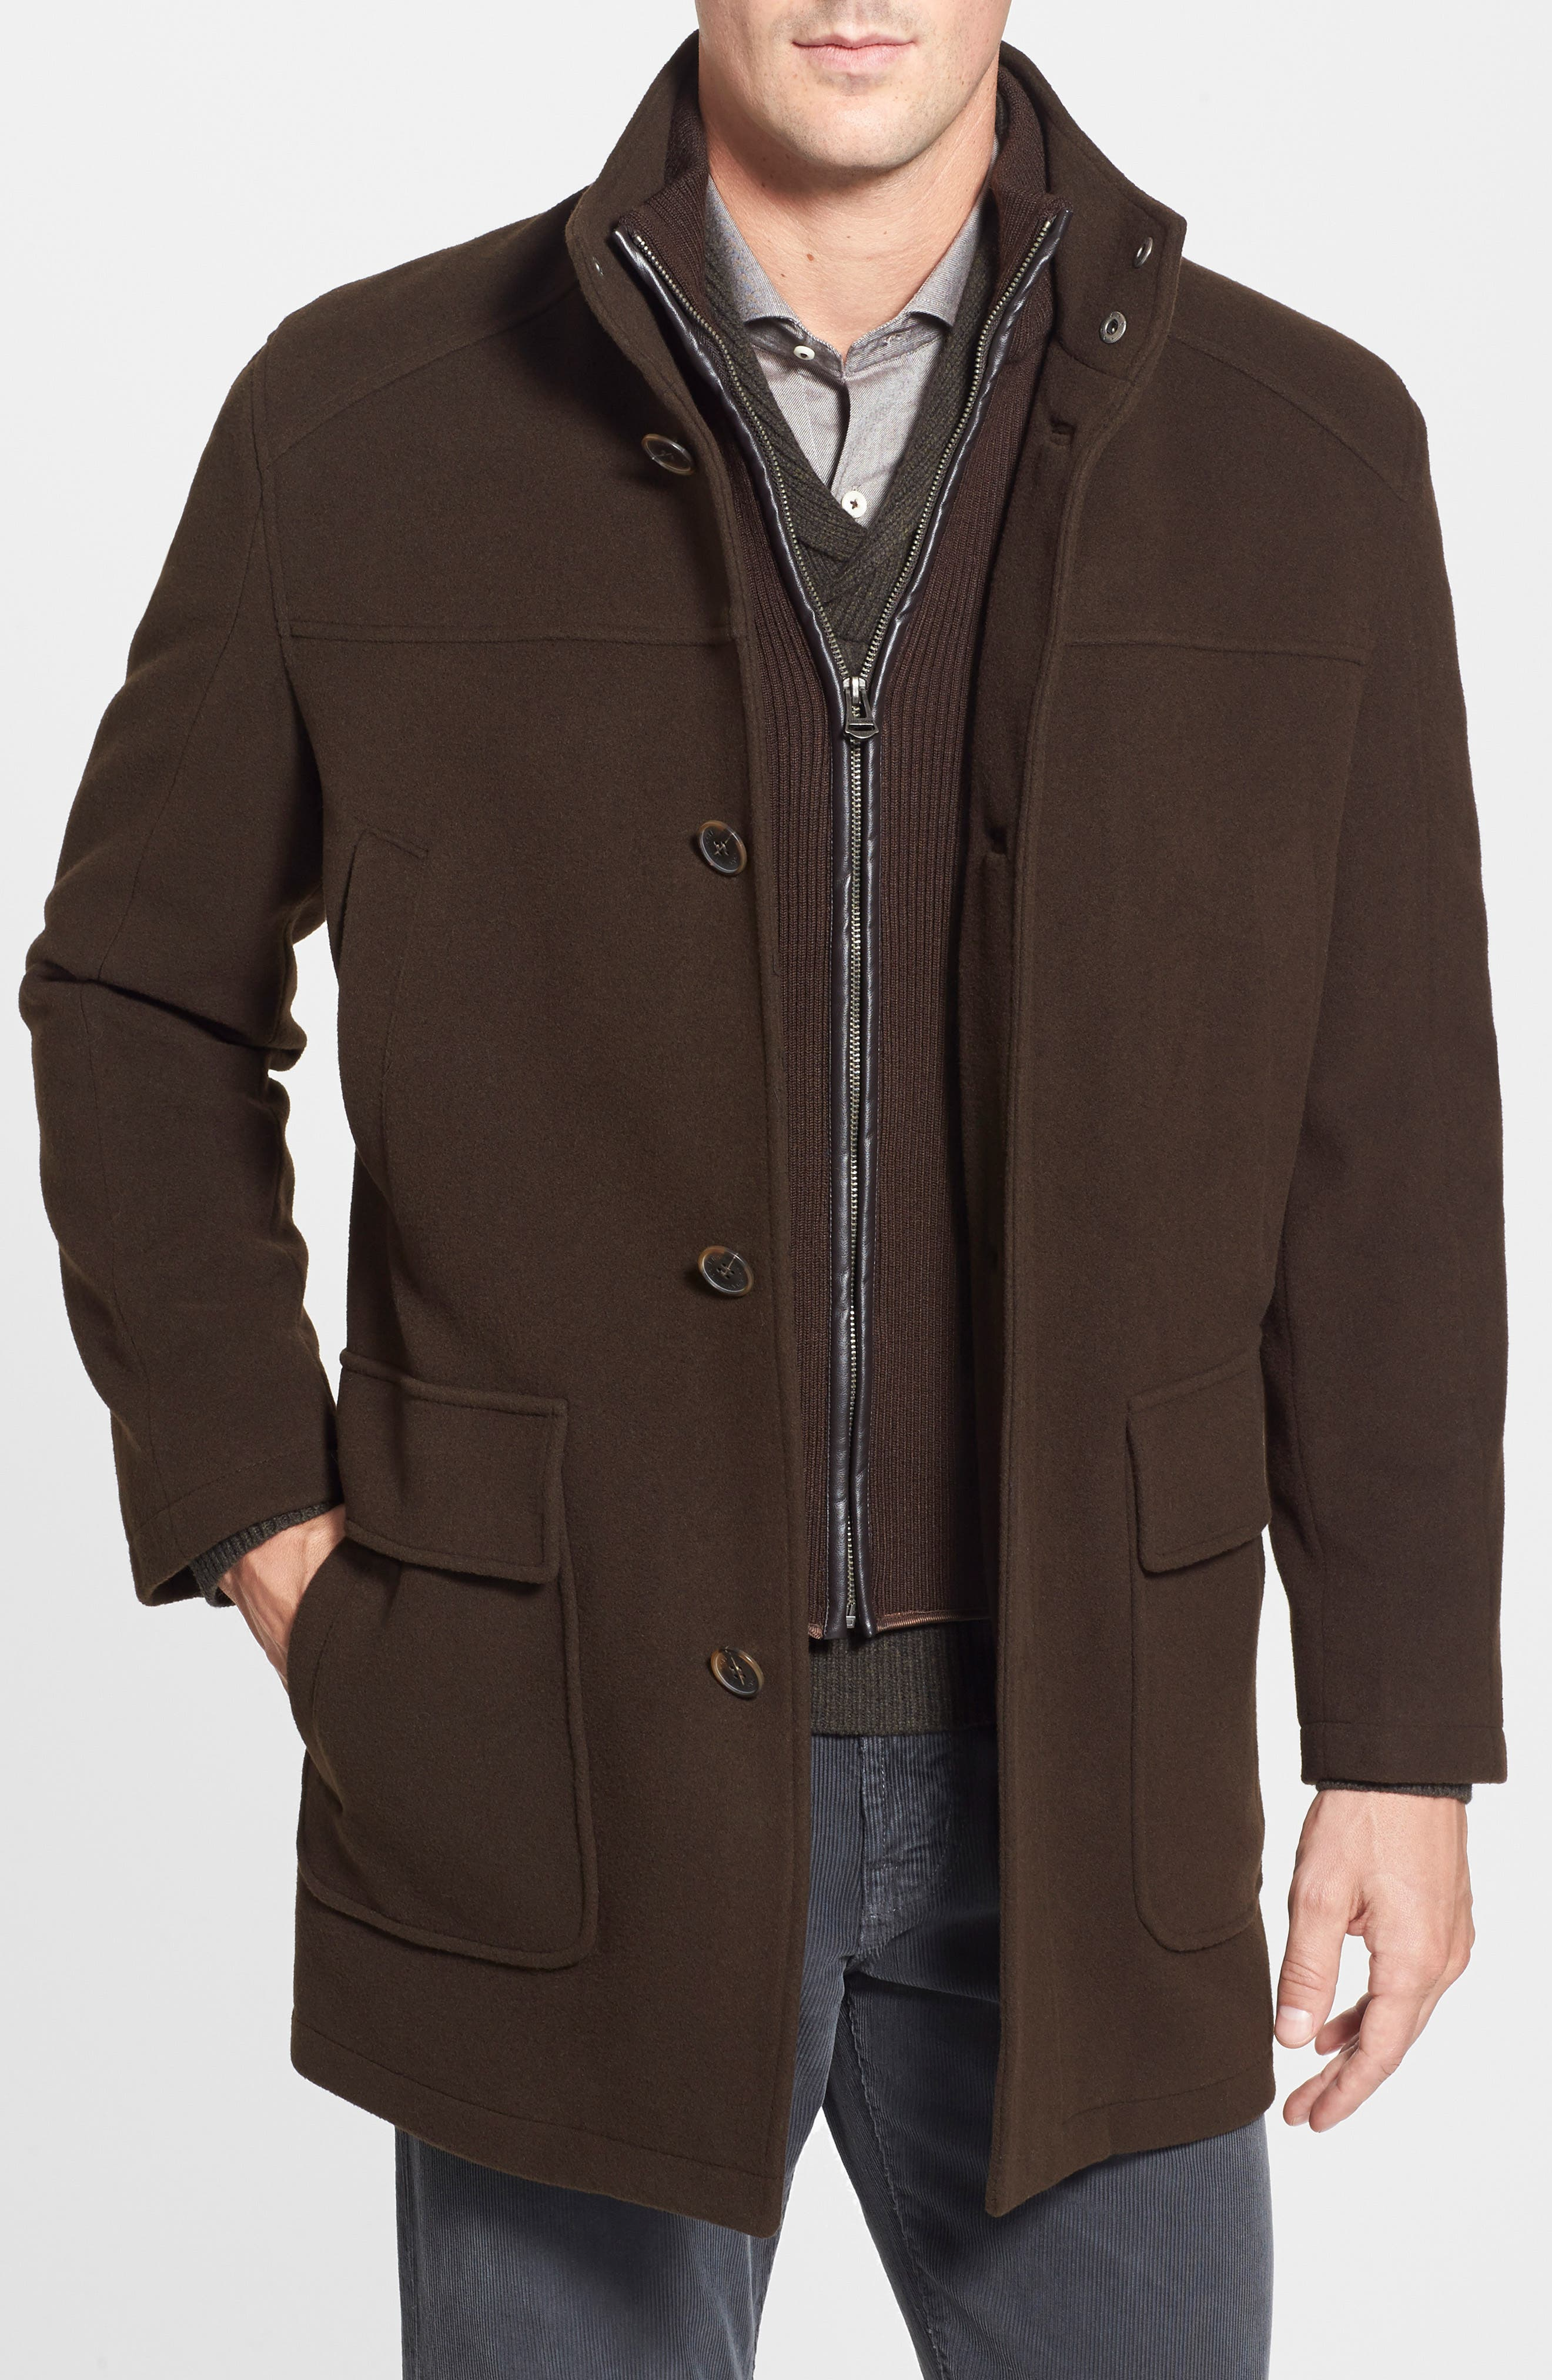 Wool Blend Topcoat with Inset Bib,                             Alternate thumbnail 9, color,